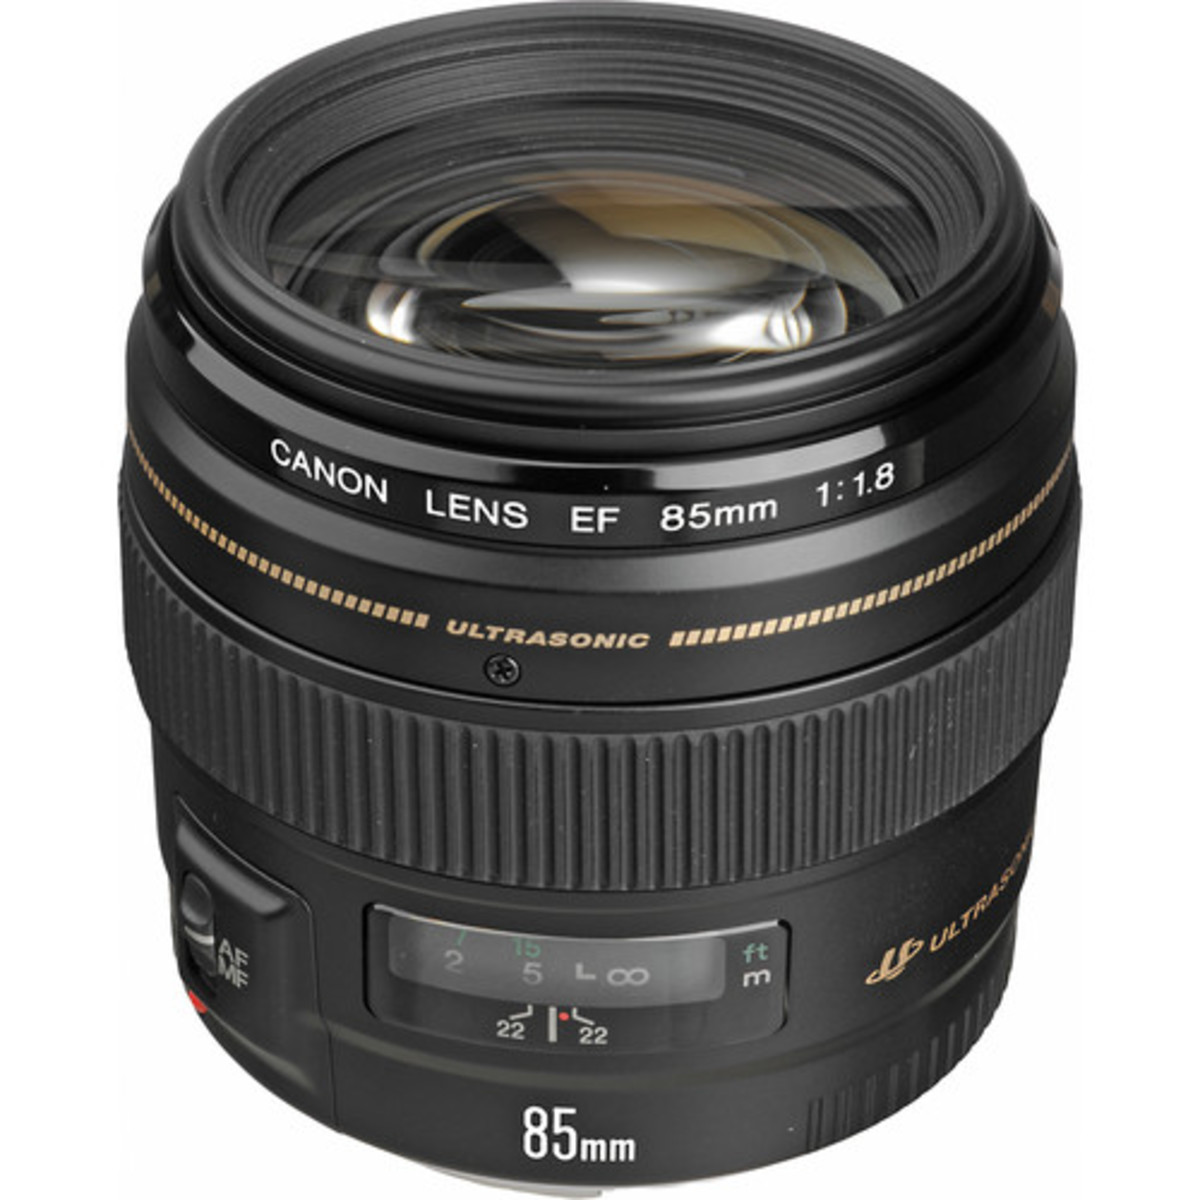 EF 85mm f/1.8 USM Lens (Parallel imported)